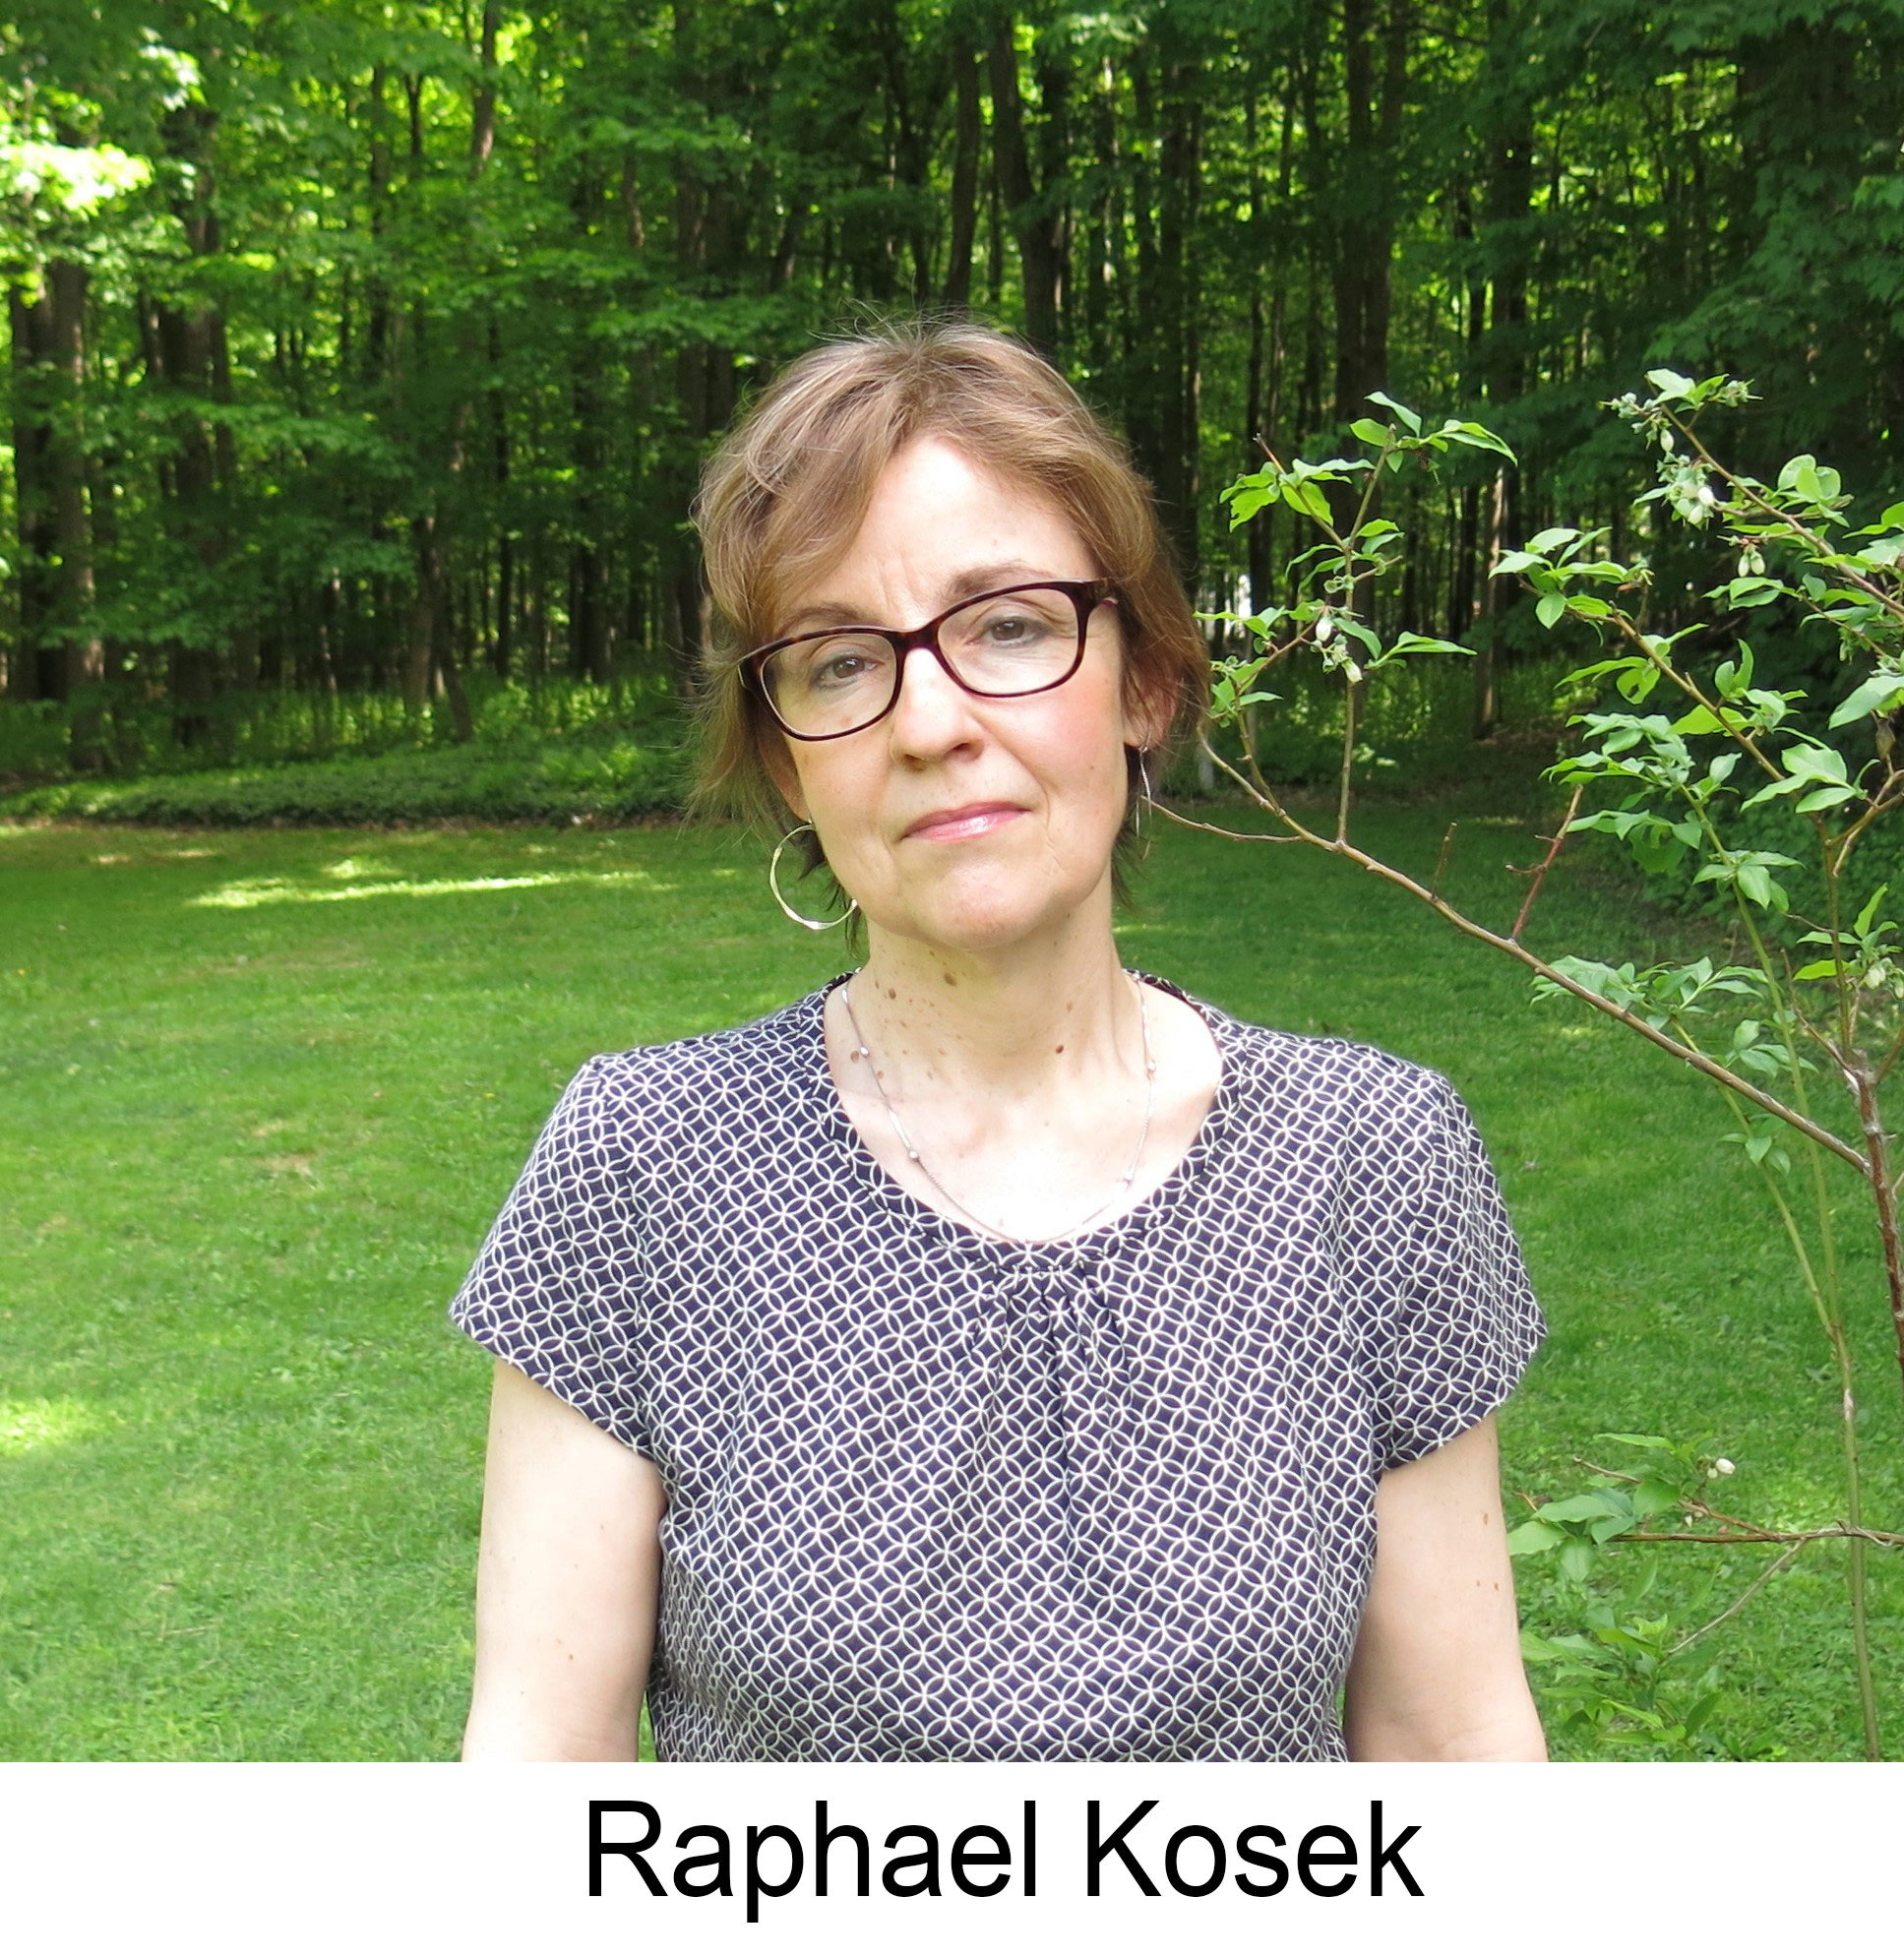 Raphael Kosek 2019 Dutchess County Poet Laureate